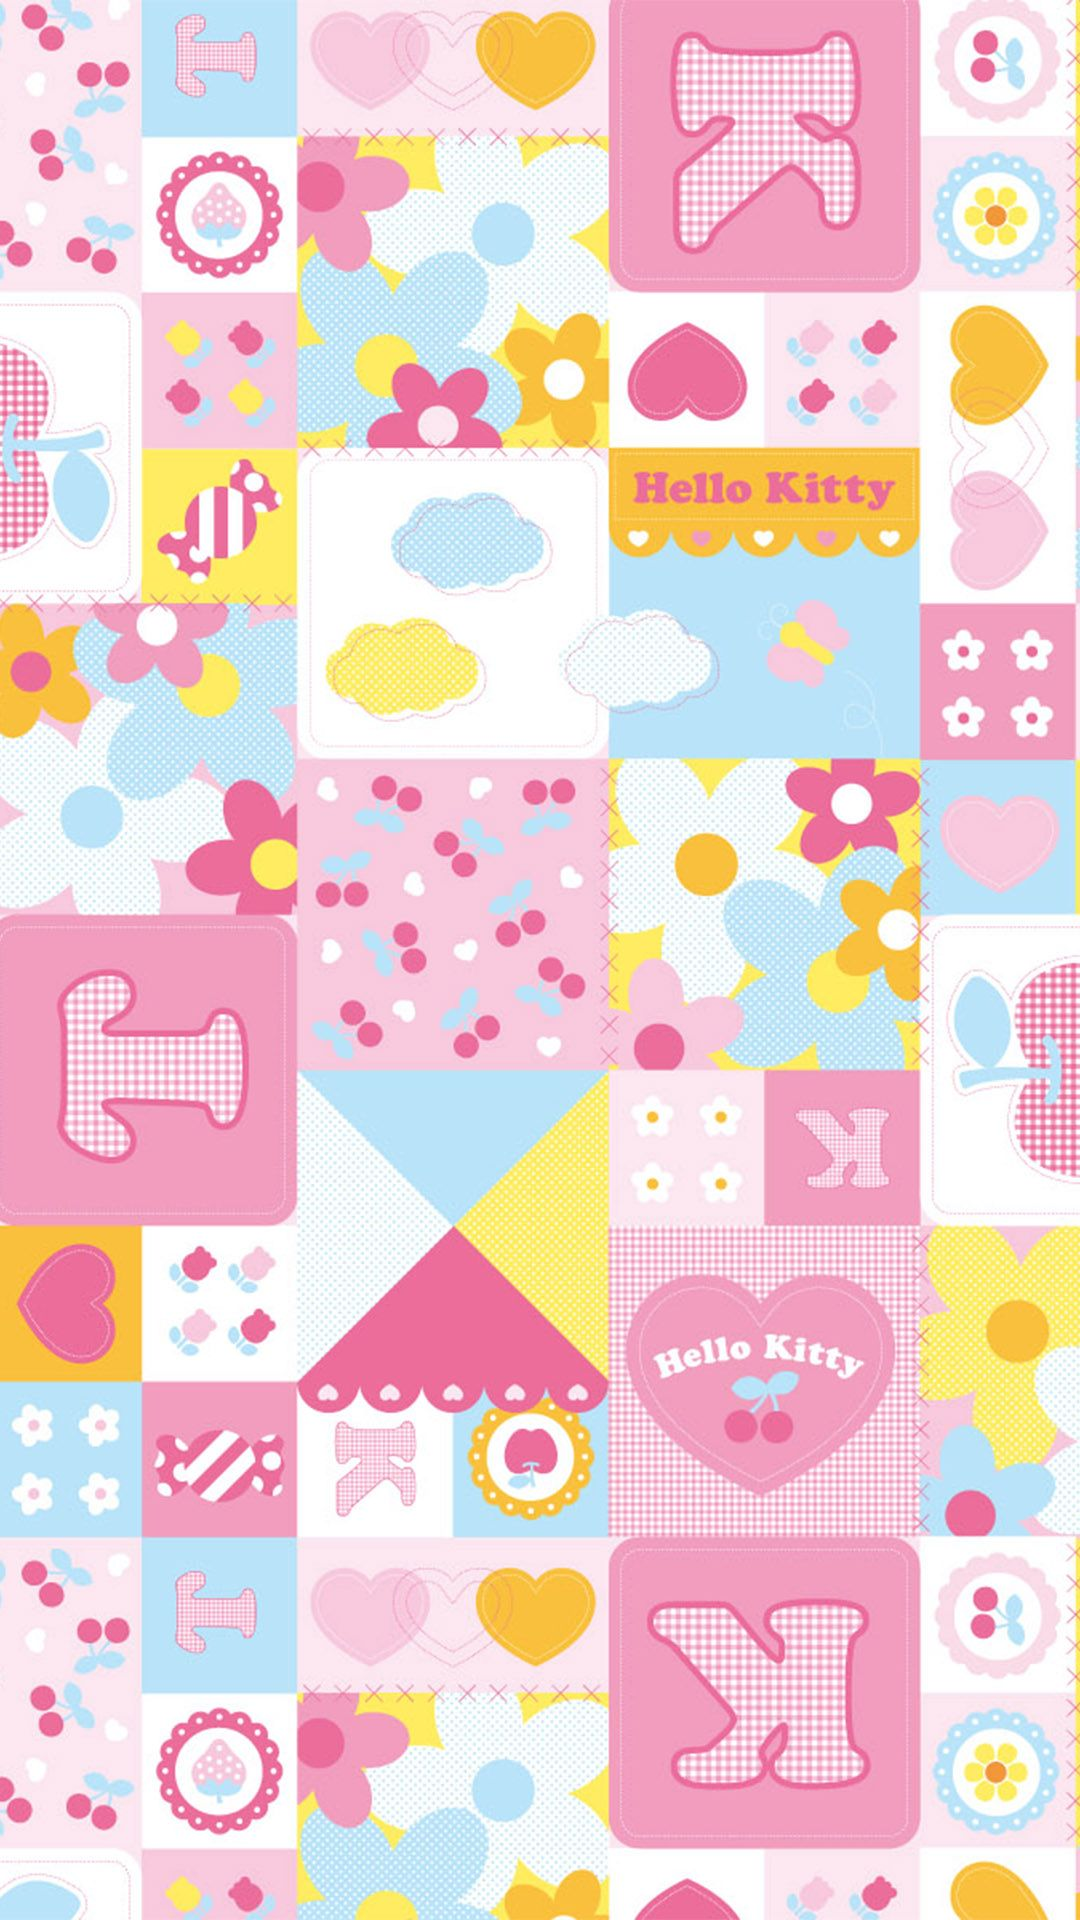 Most Inspiring Wallpaper Hello Kitty Samsung Galaxy - 745f5f760429ee7ae5cade260bbf67a2  Photograph_804316.jpg